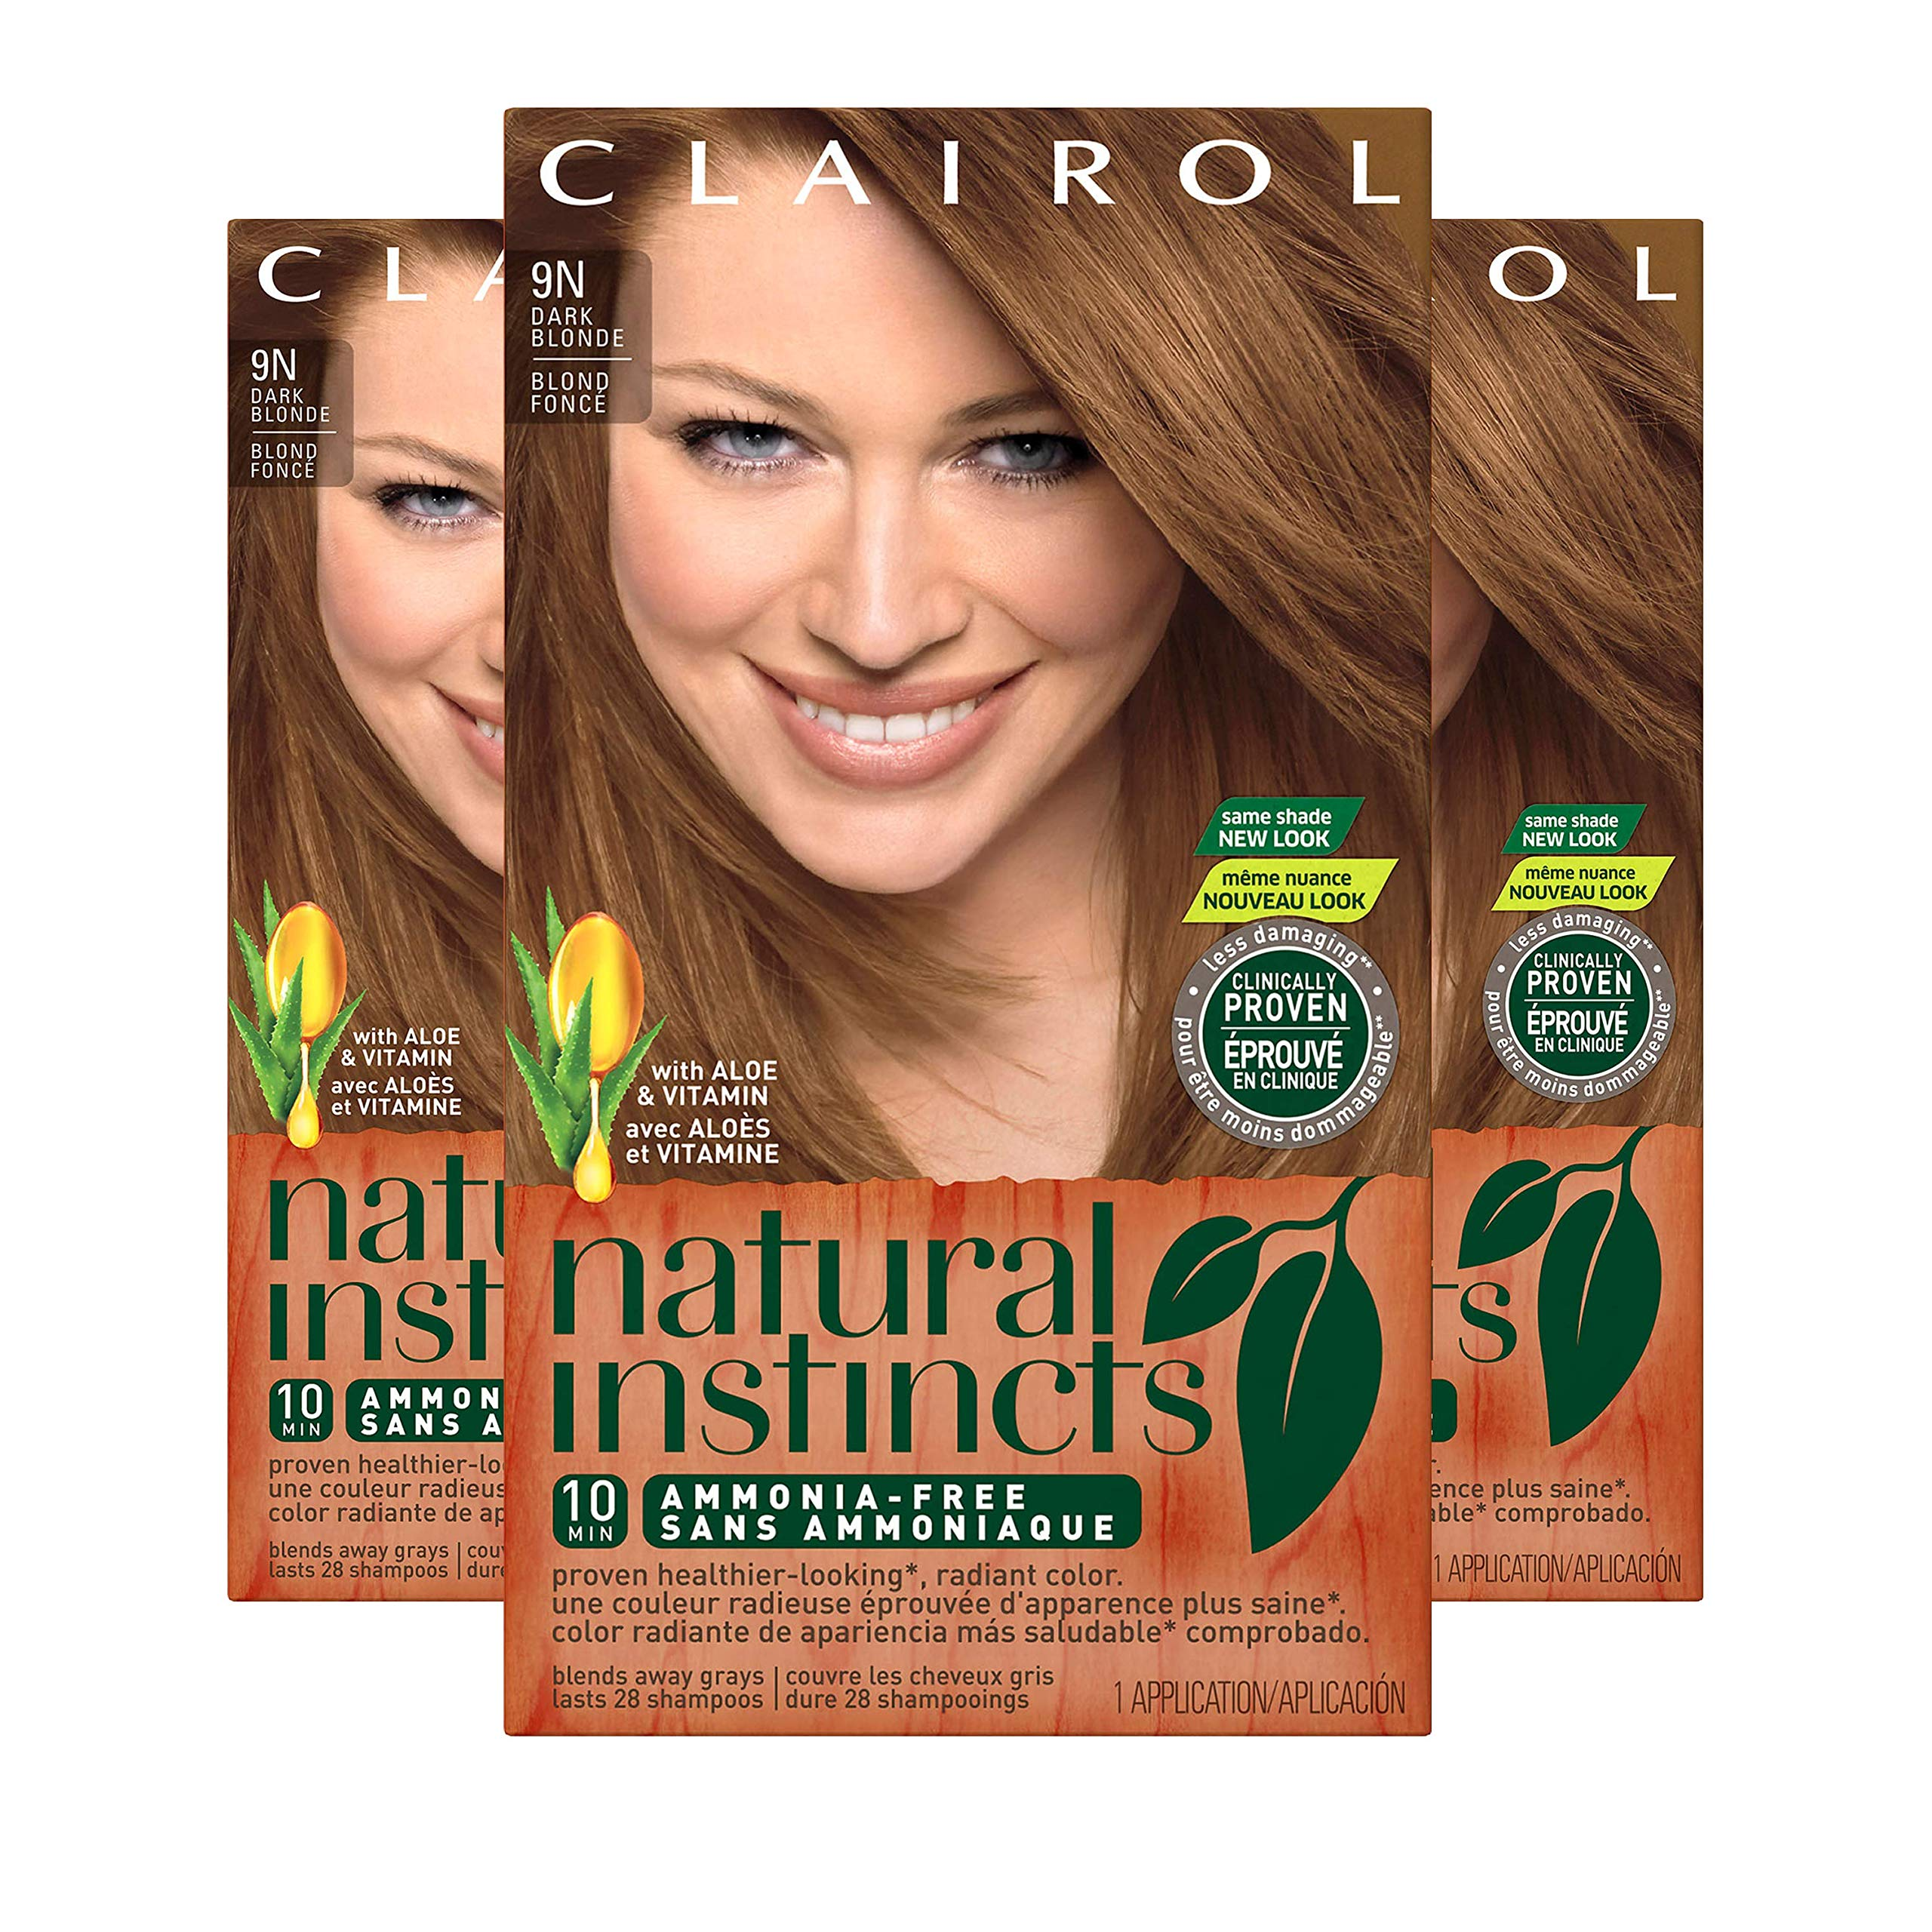 Clairol Natural Instincts Hair Color, Shade 7 9nv/coastal Dune, 3 Count by Clairol